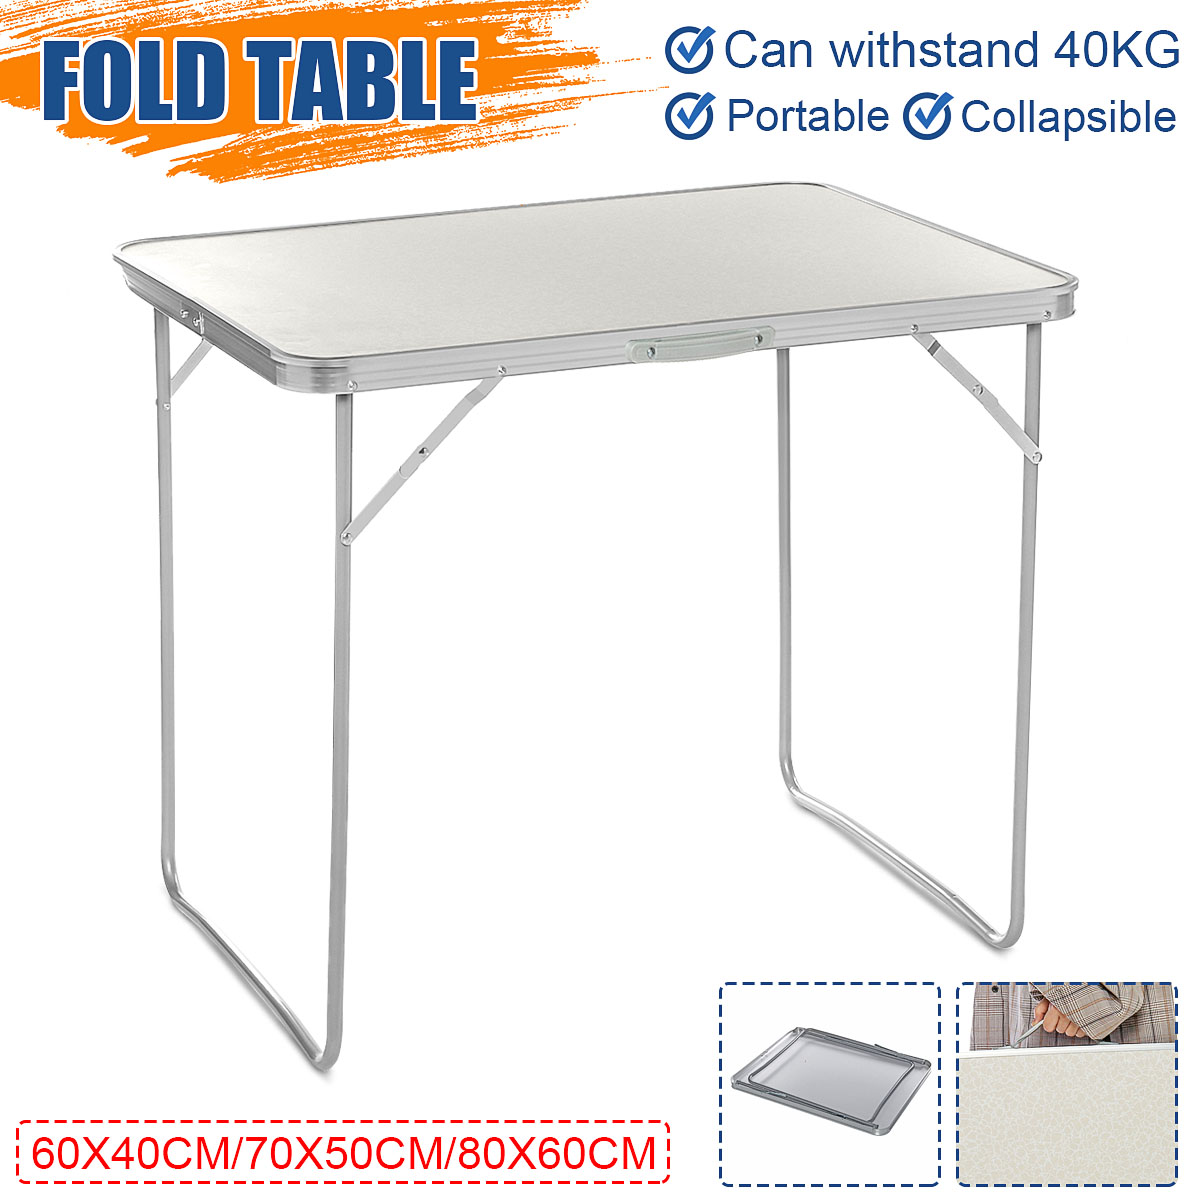 3 Size Portable Folding Table Aluminum Dining Outdoor Camping Picnic Beach Desk Laptop Table